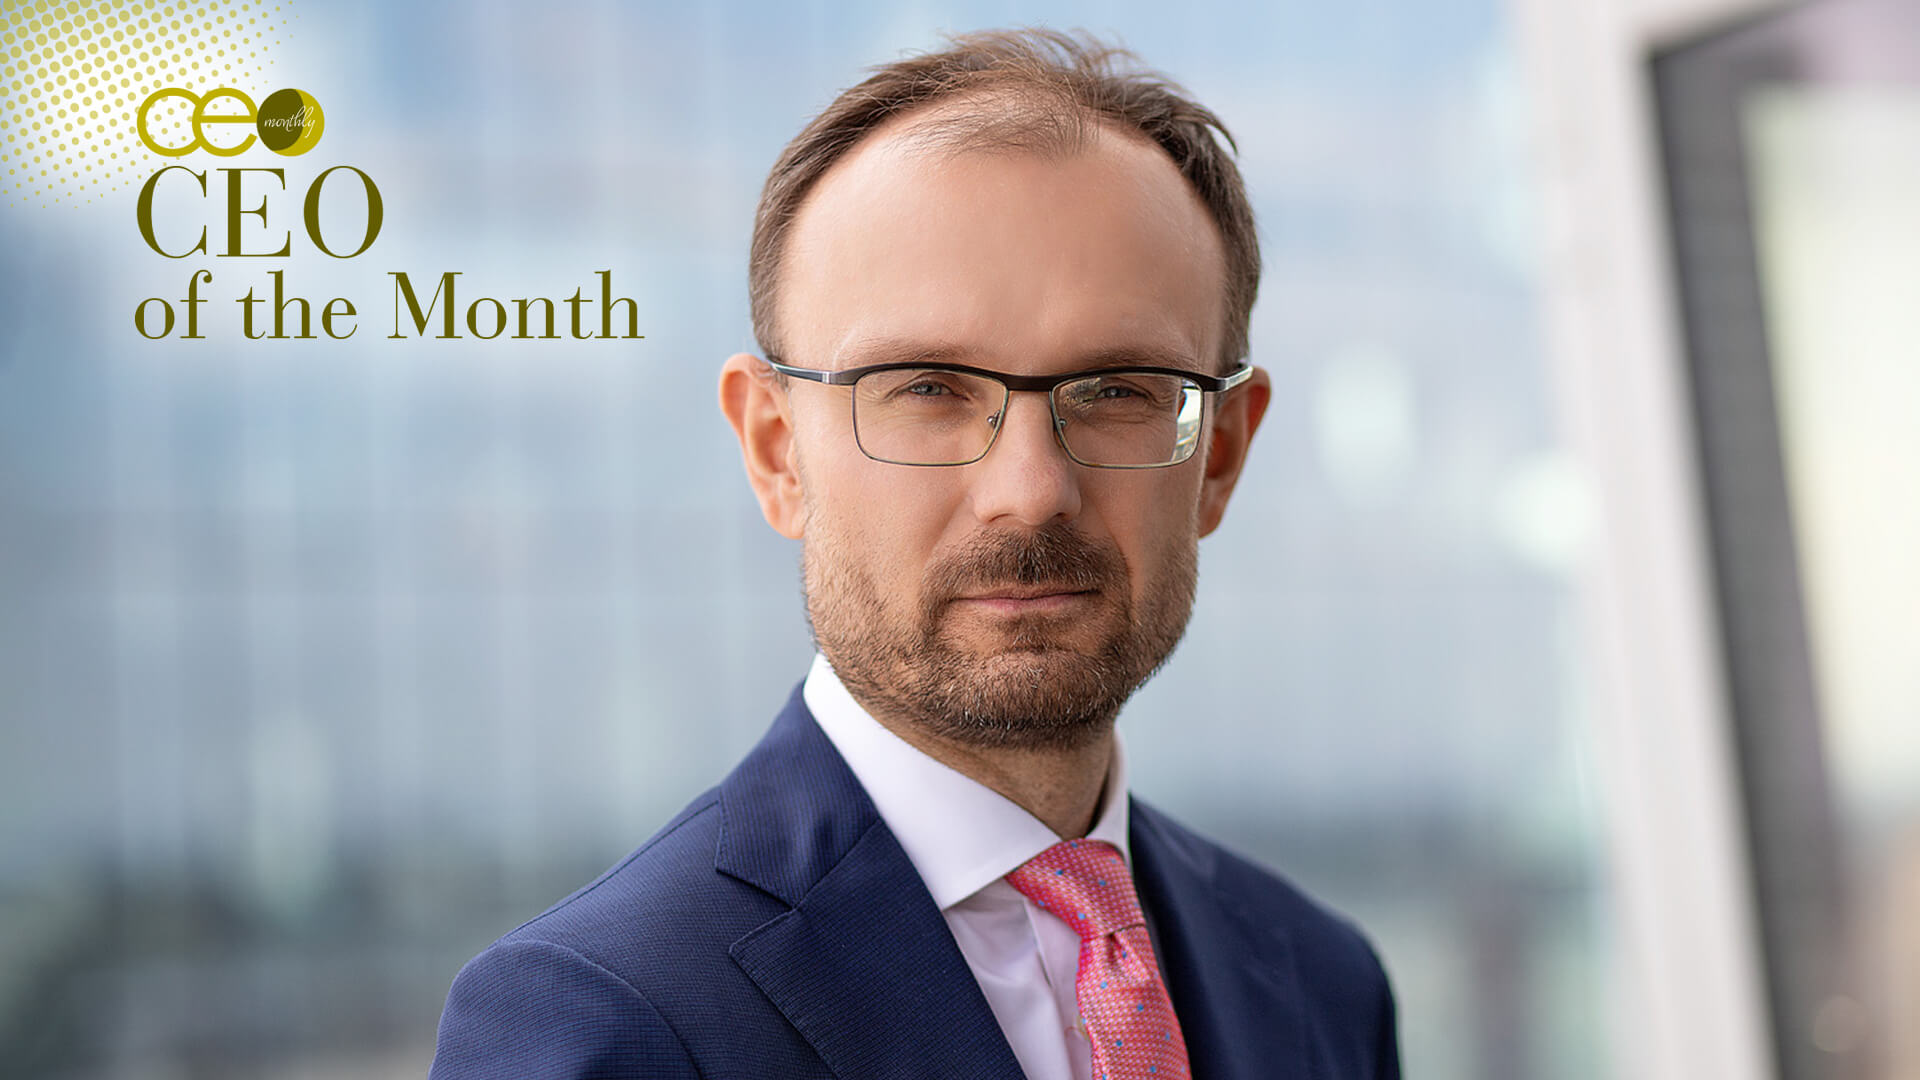 ceo of the month 2